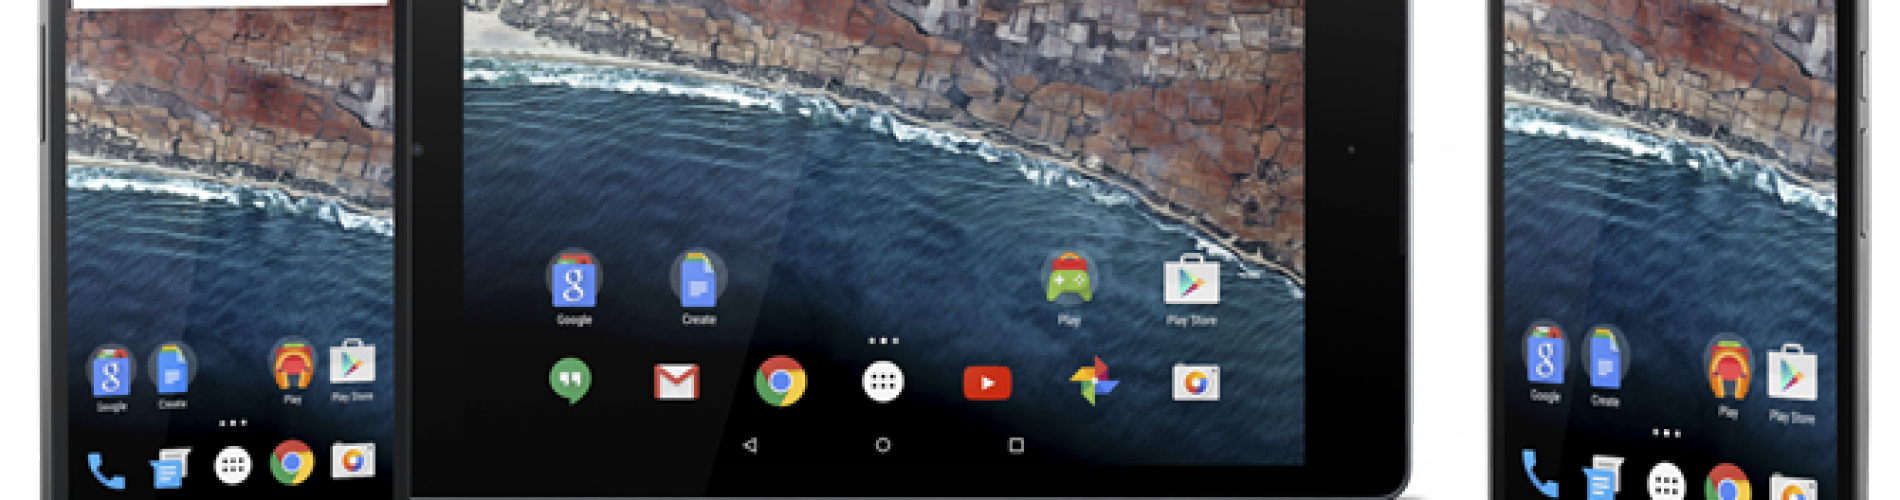 Android M Developer Preview officially coming to Nexus 5, 6, 9, and Player